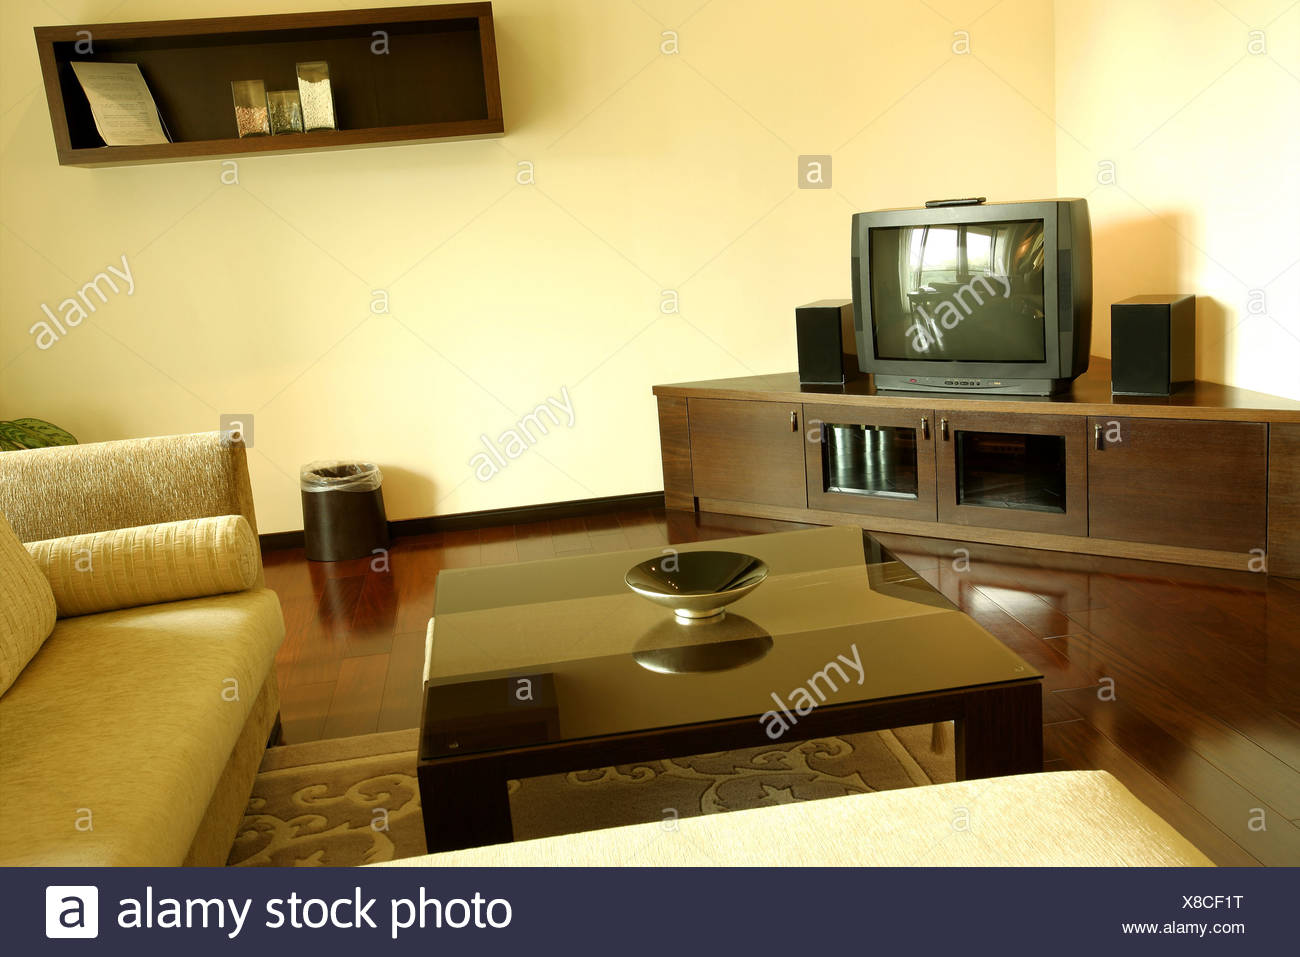 Tv Chest Stock Photos & Tv Chest Stock Images - Alamy